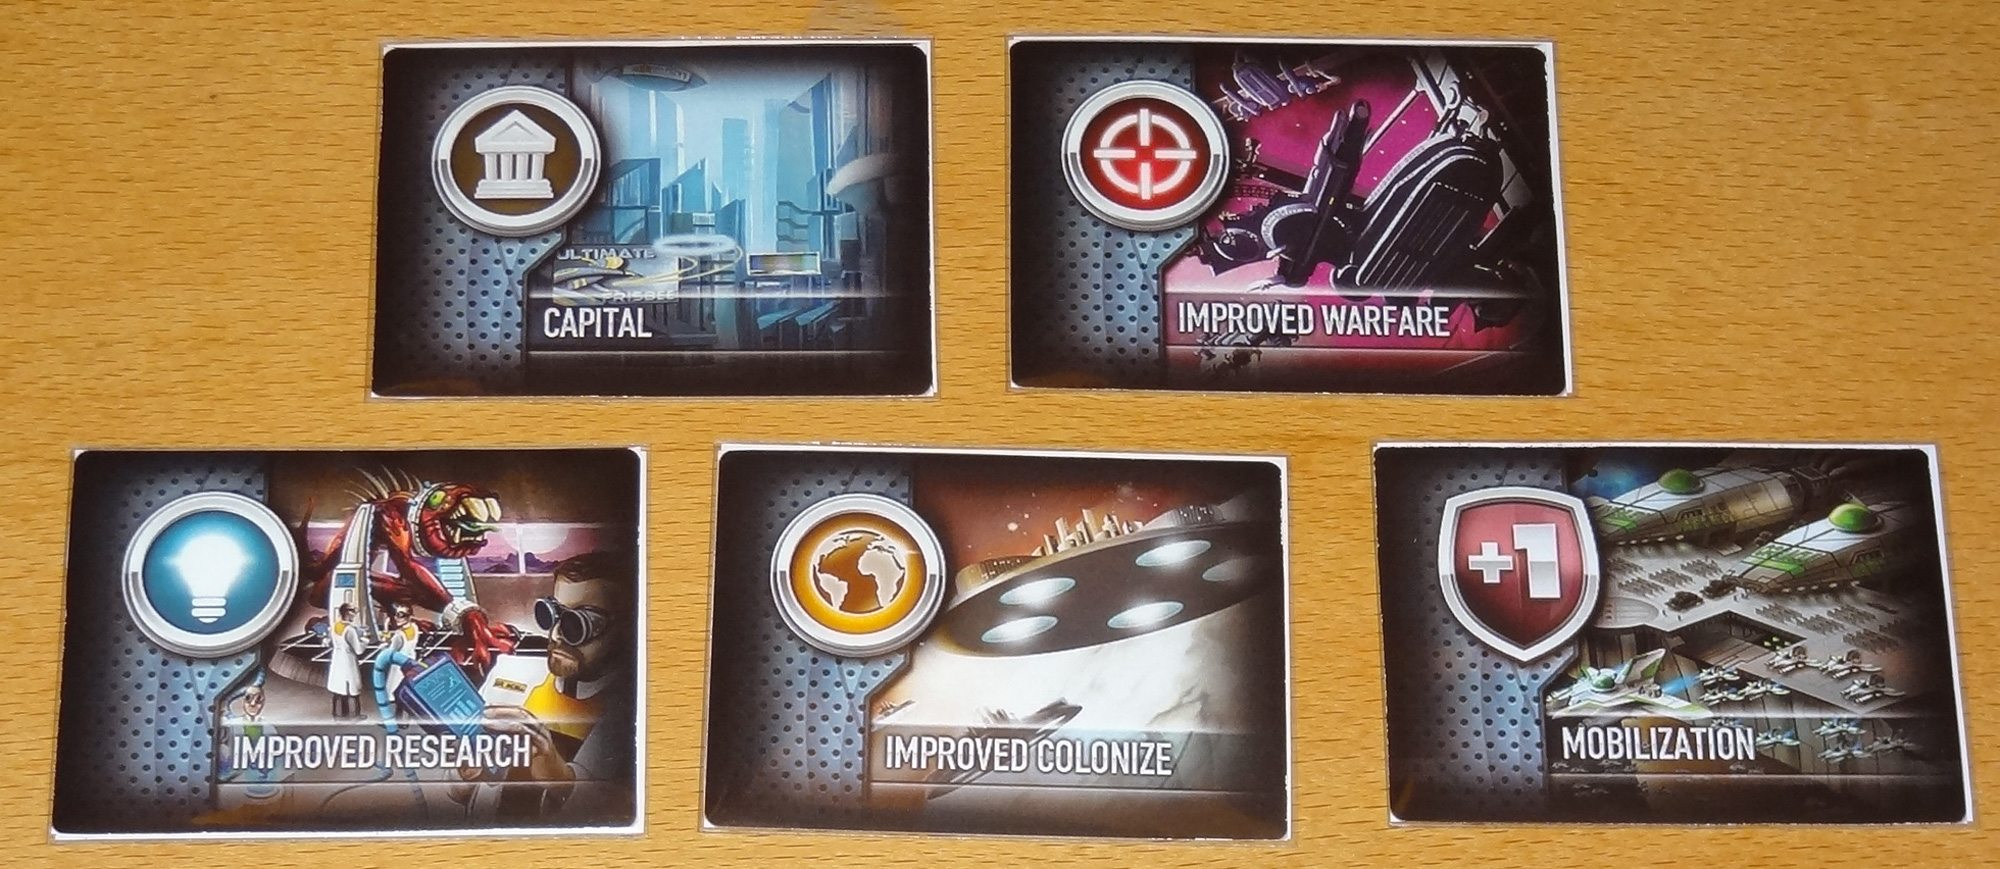 Eminent Domain Microcosm Technology cards